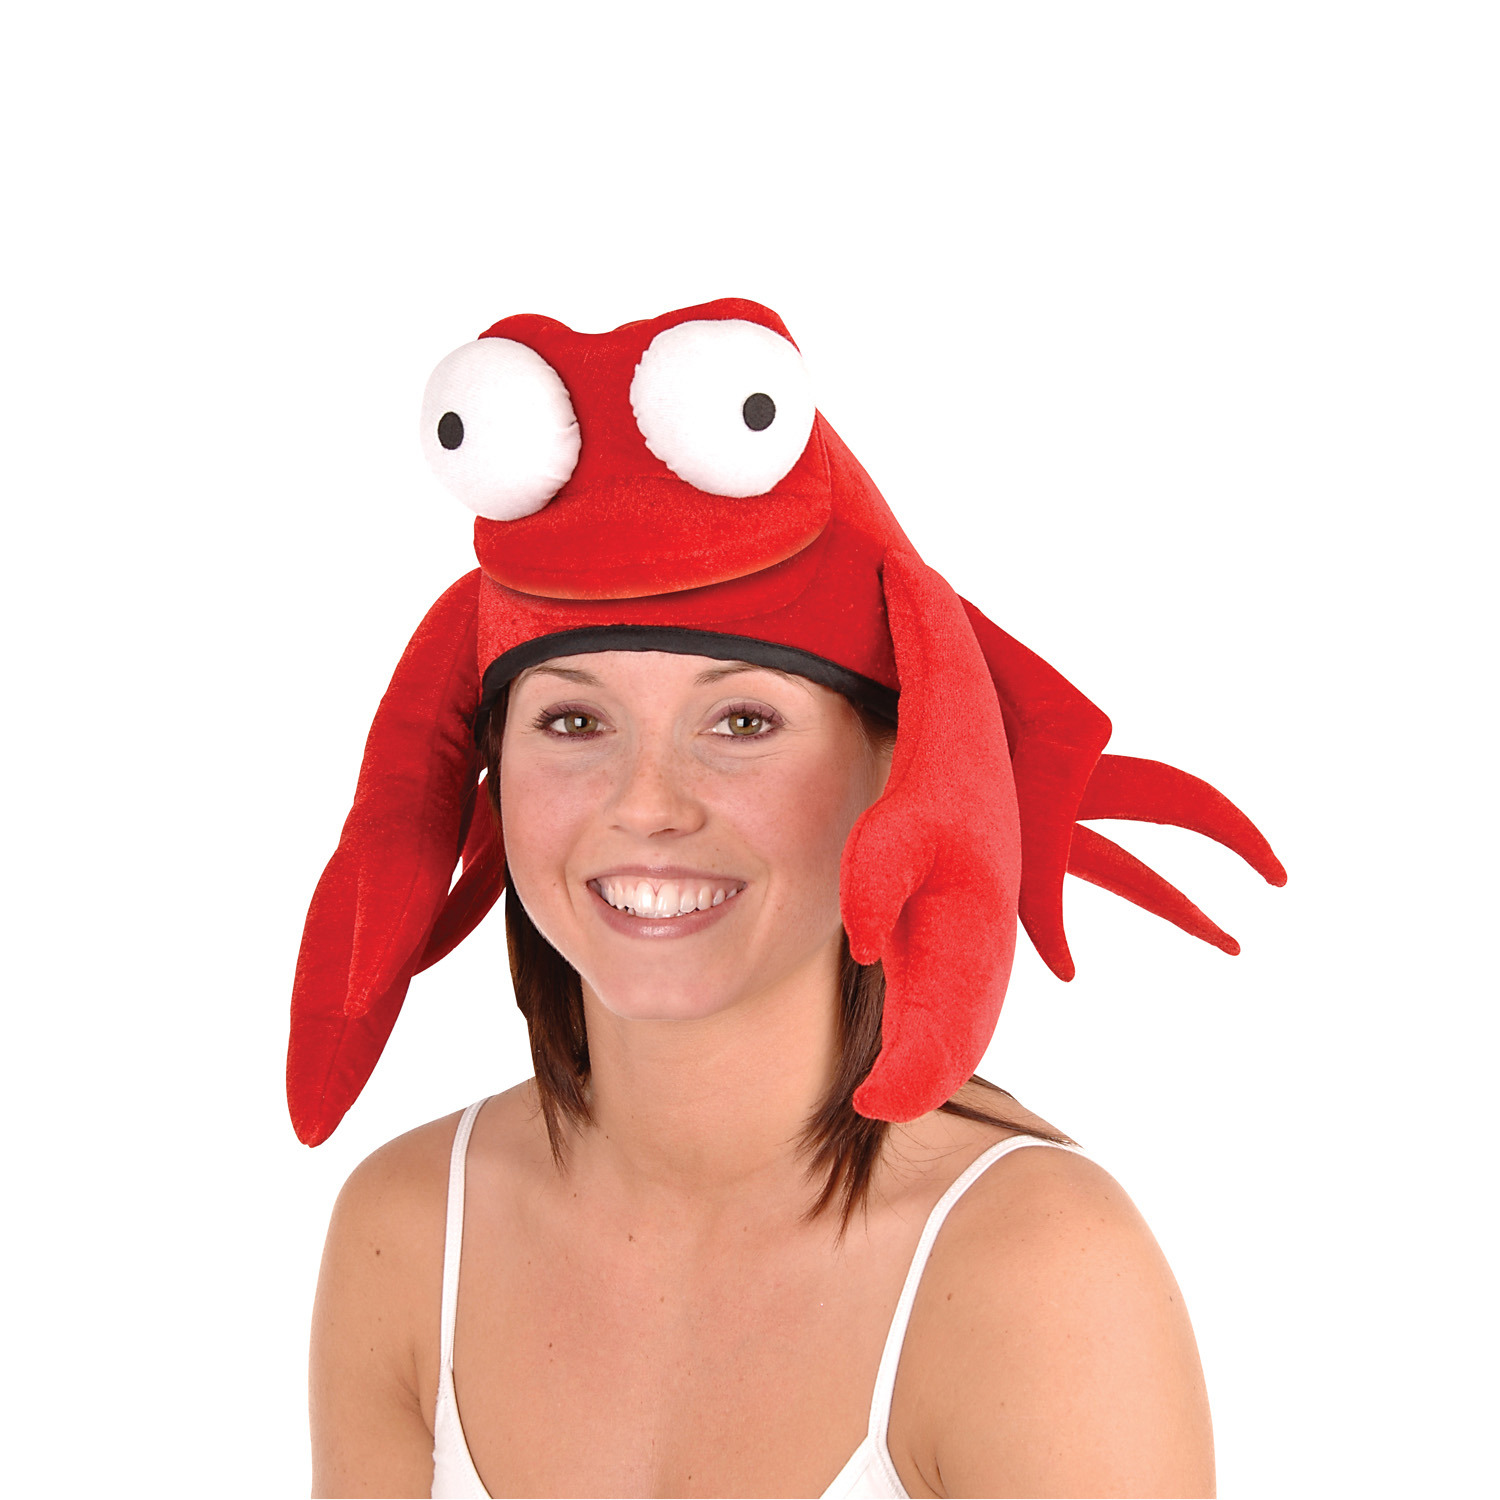 Plush Crab Hat (Pack of 6) Plush Crab Hat, party favor, luau, new years eve, wholesale, inexpensive, bulk